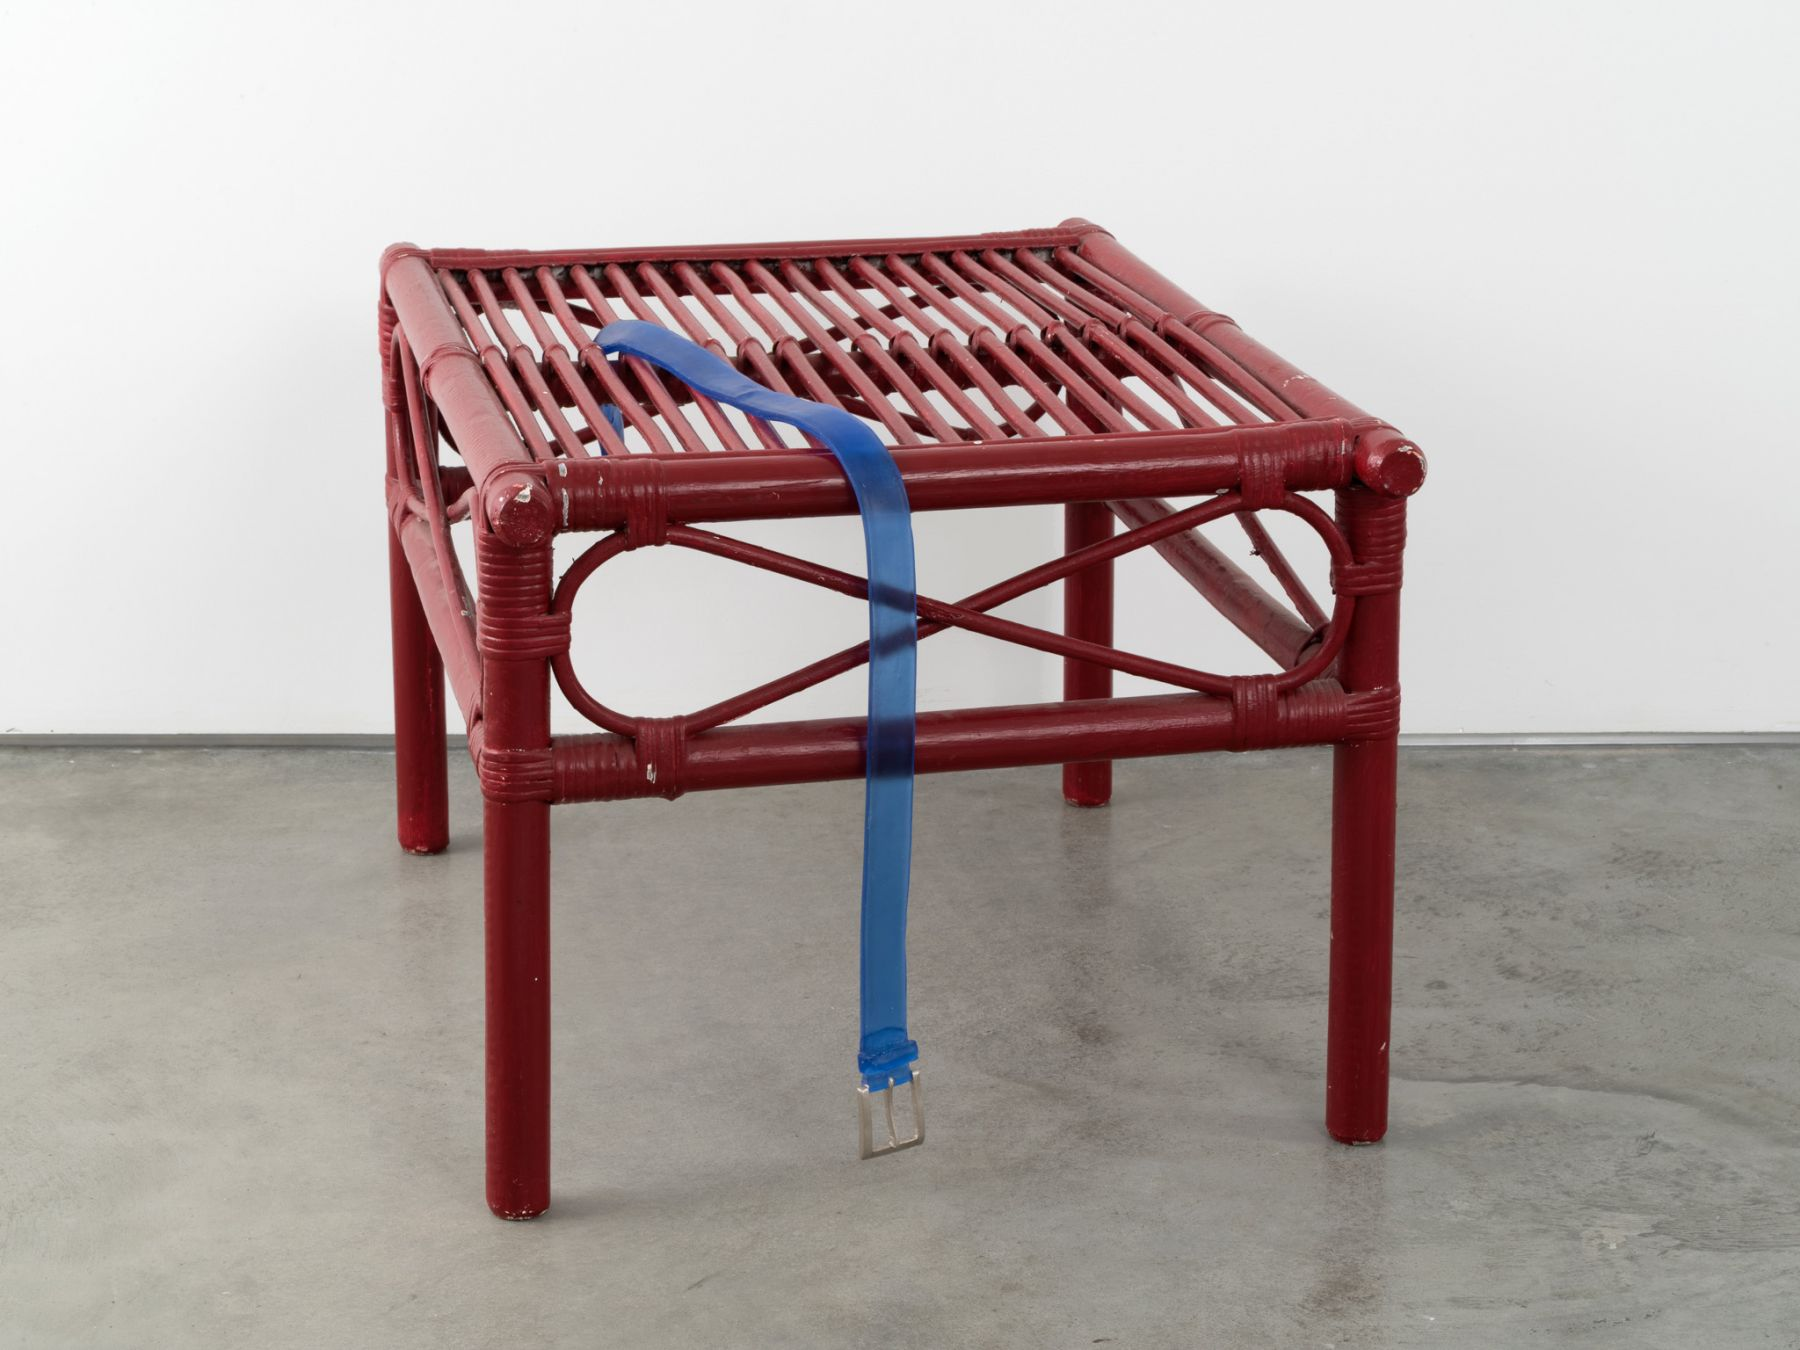 Valentin Carron, Belt on bamboo table, 2014